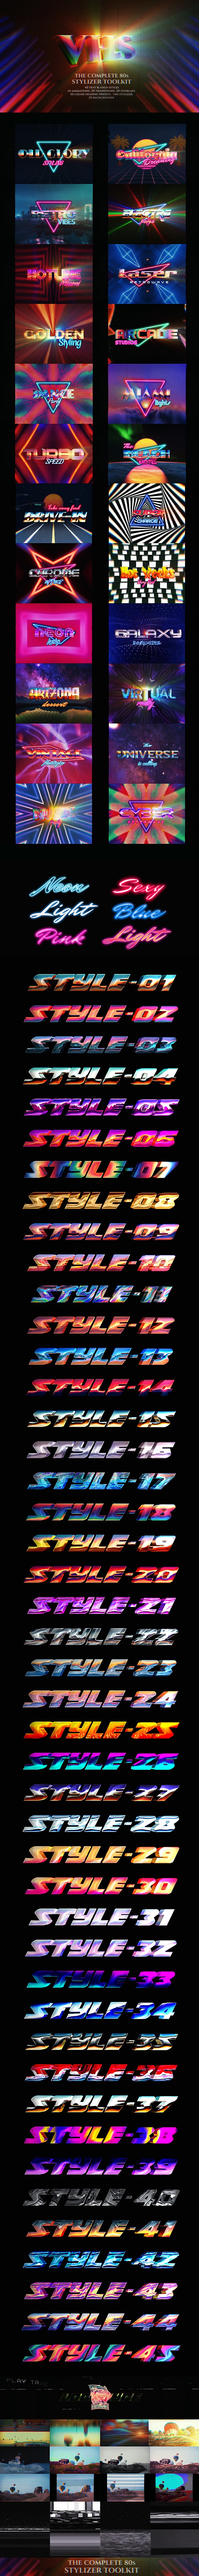 The Complete 80s Stylizer Toolkit - 1